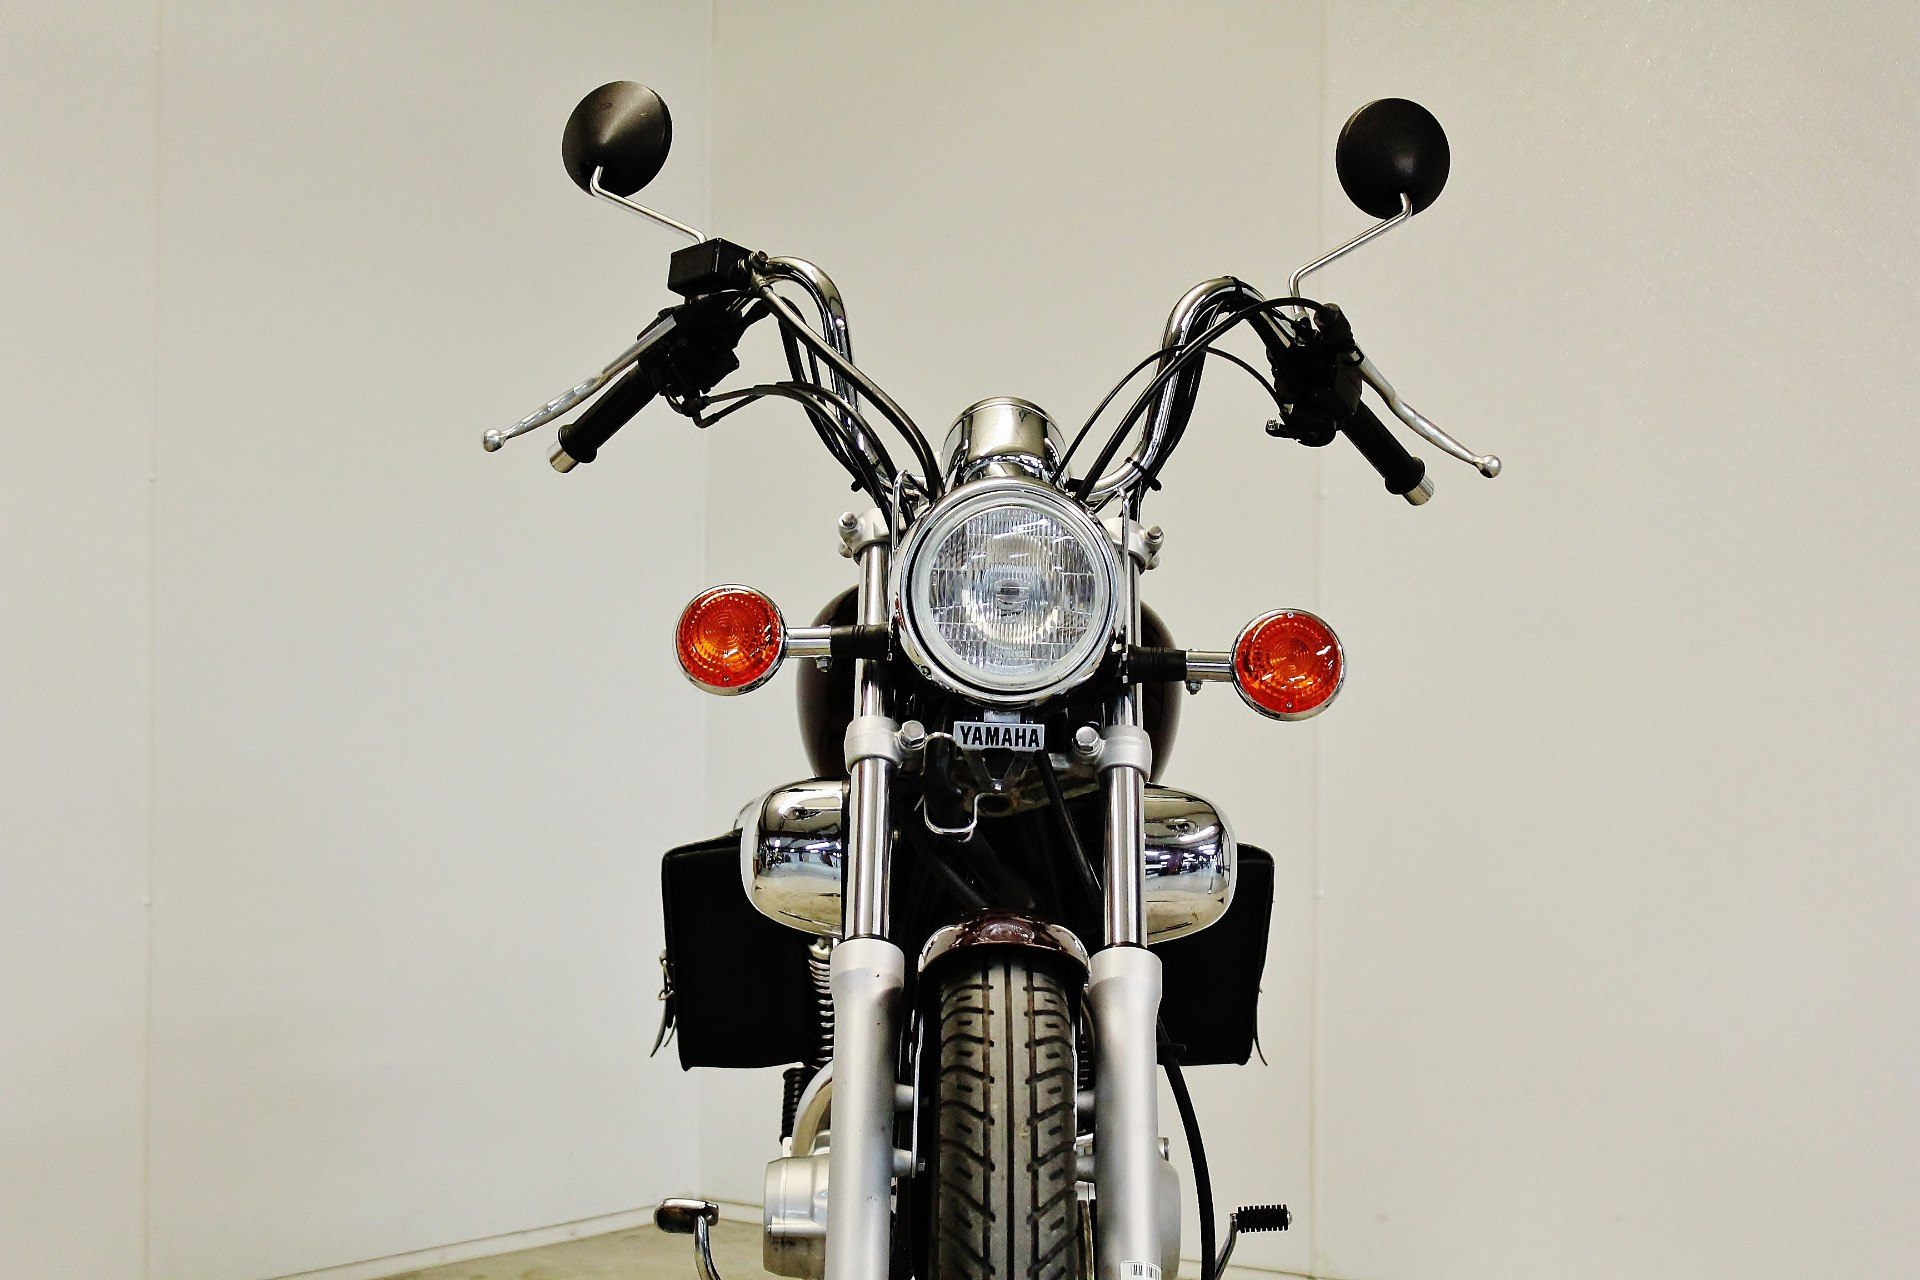 2007 Yamaha Virago 250 in Pittsfield, Massachusetts